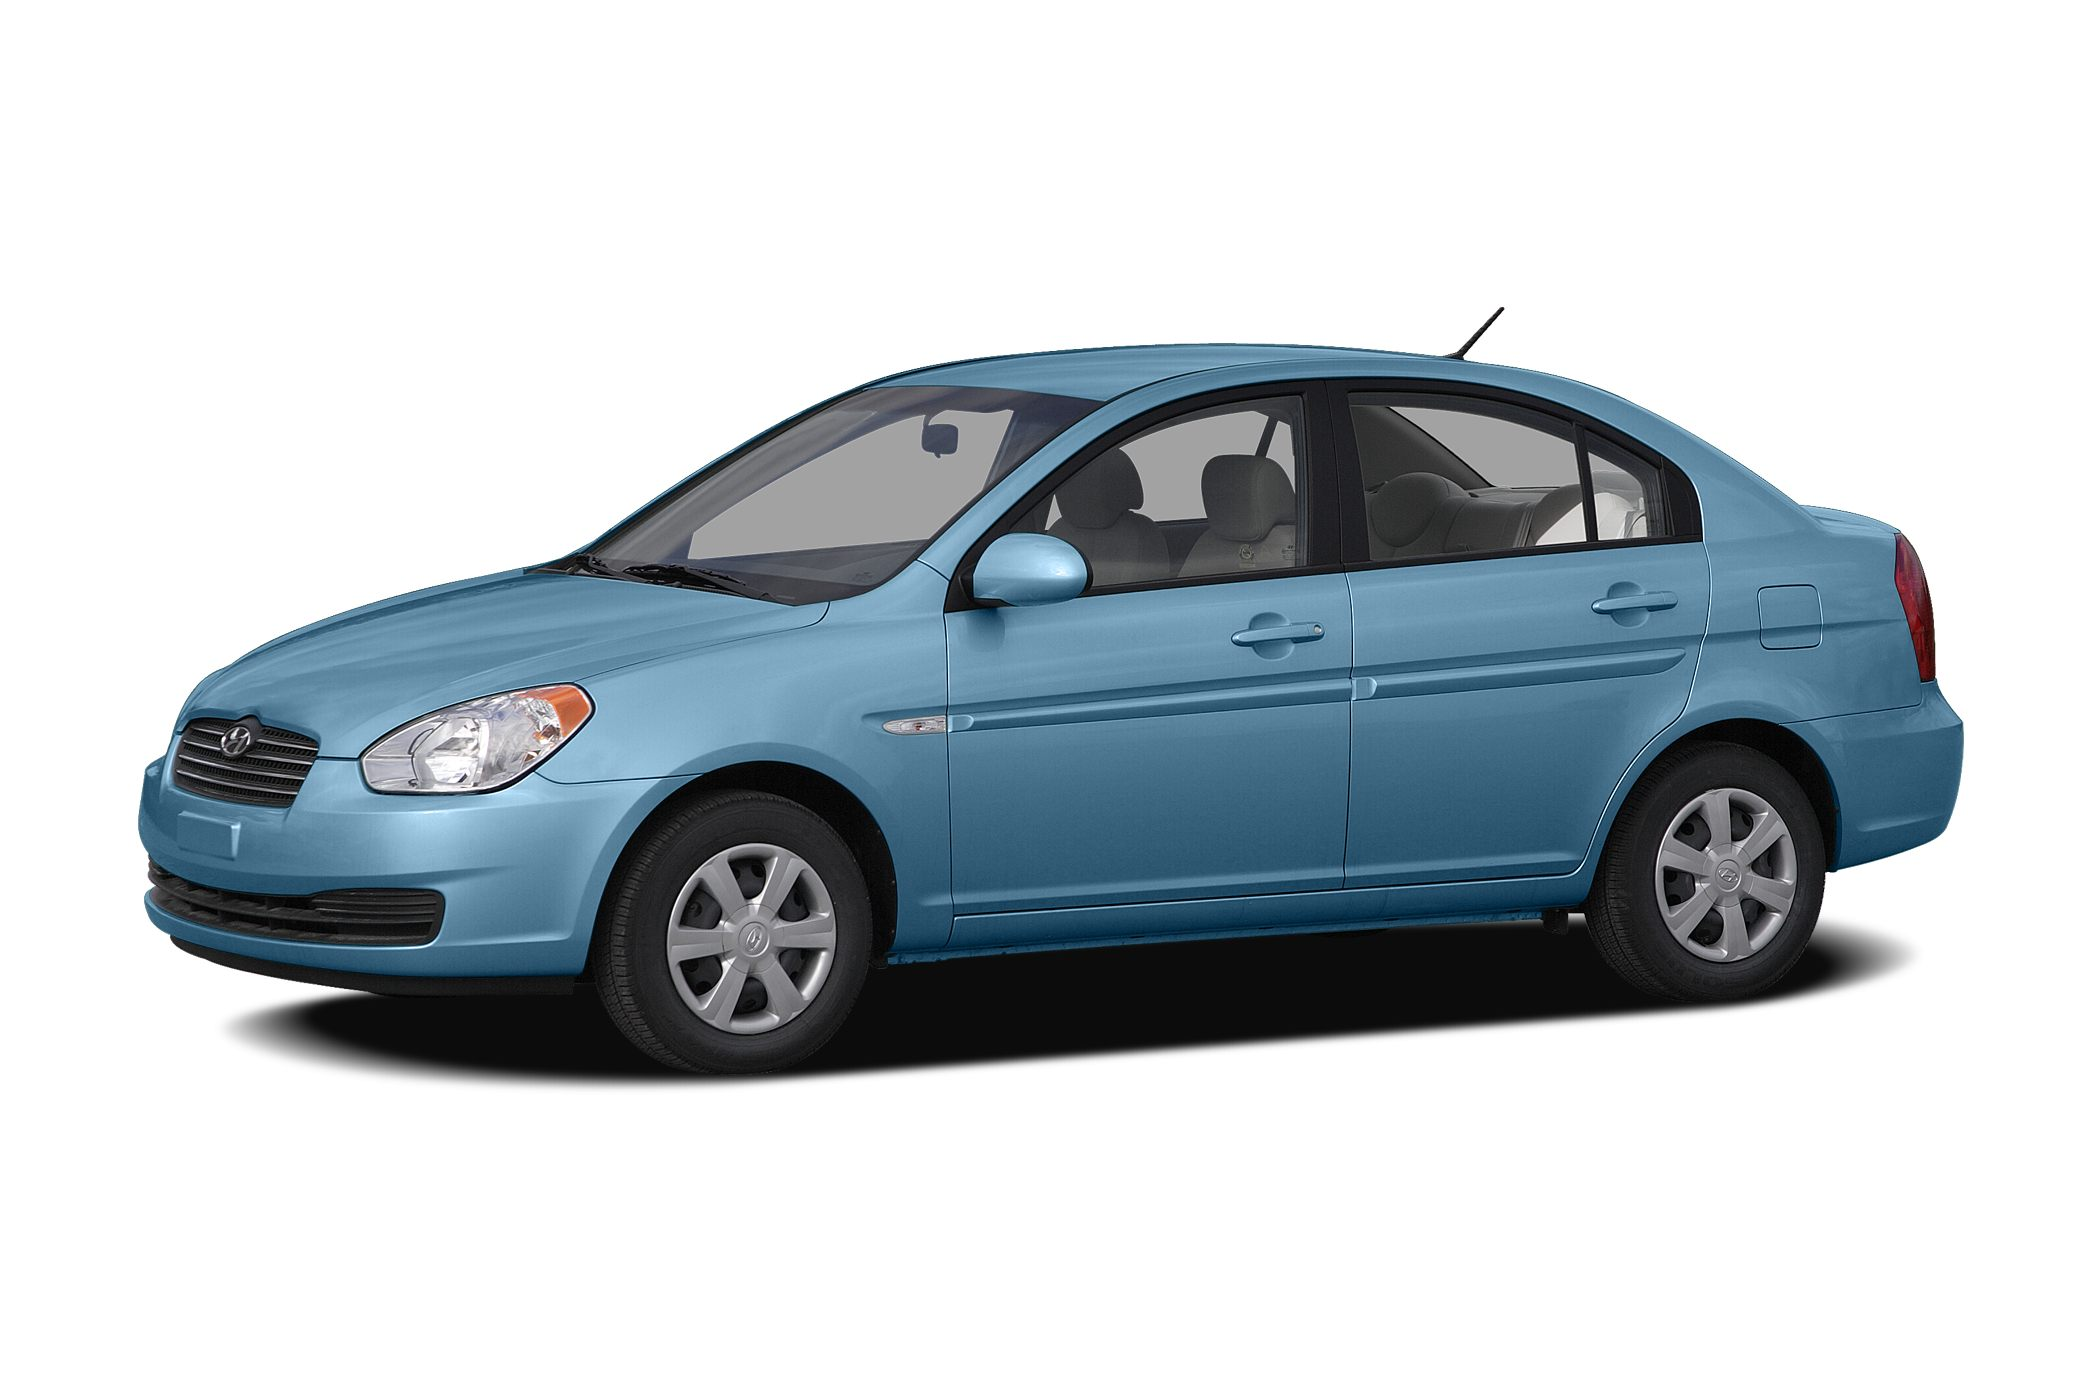 2006 hyundai accent specs and prices 2006 hyundai accent specs and prices